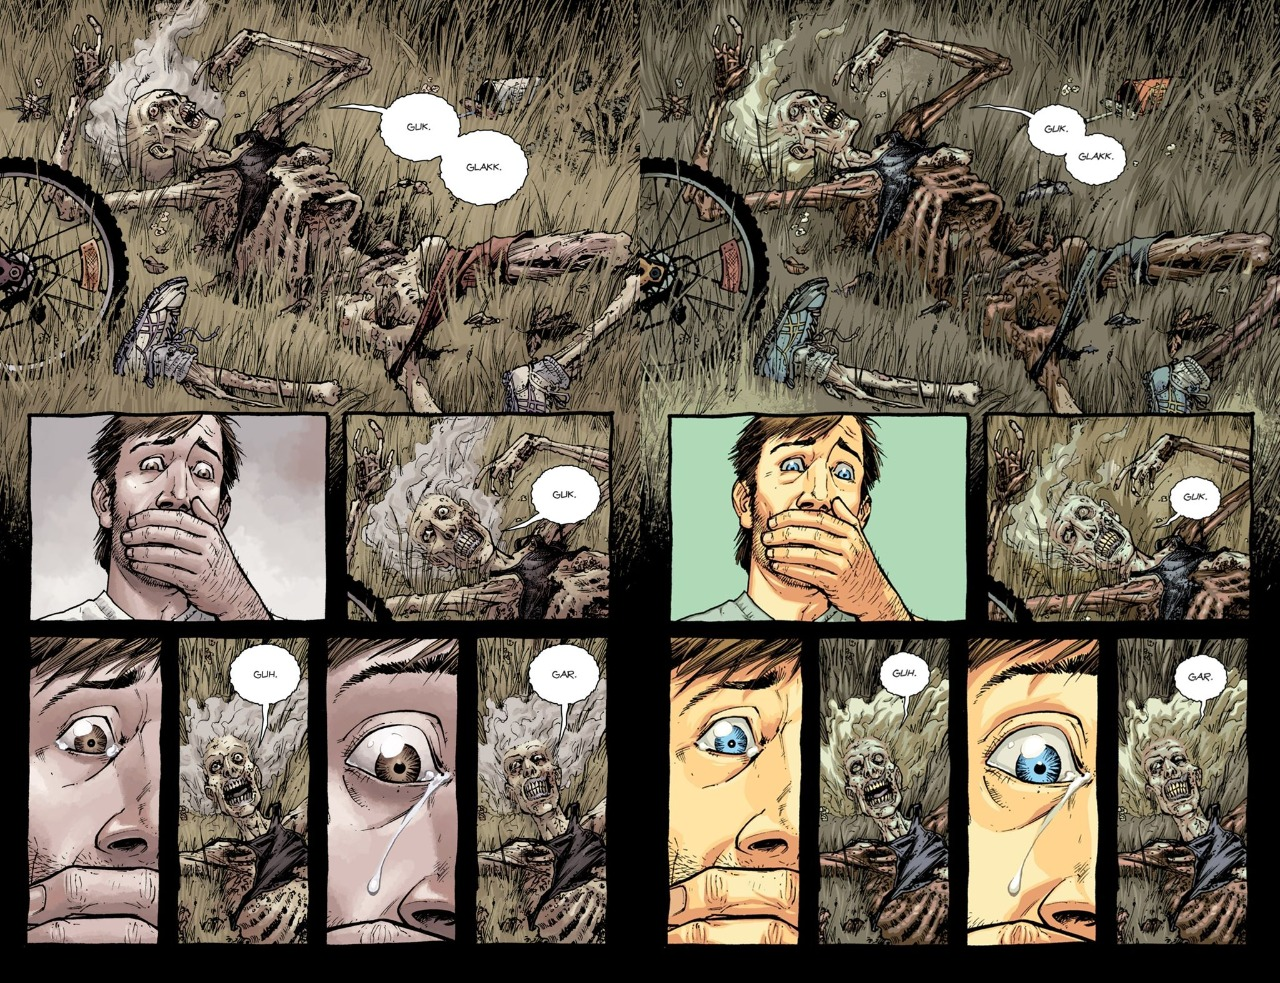 The-Walking-Dead-Deluxe-colorida-comparação-02